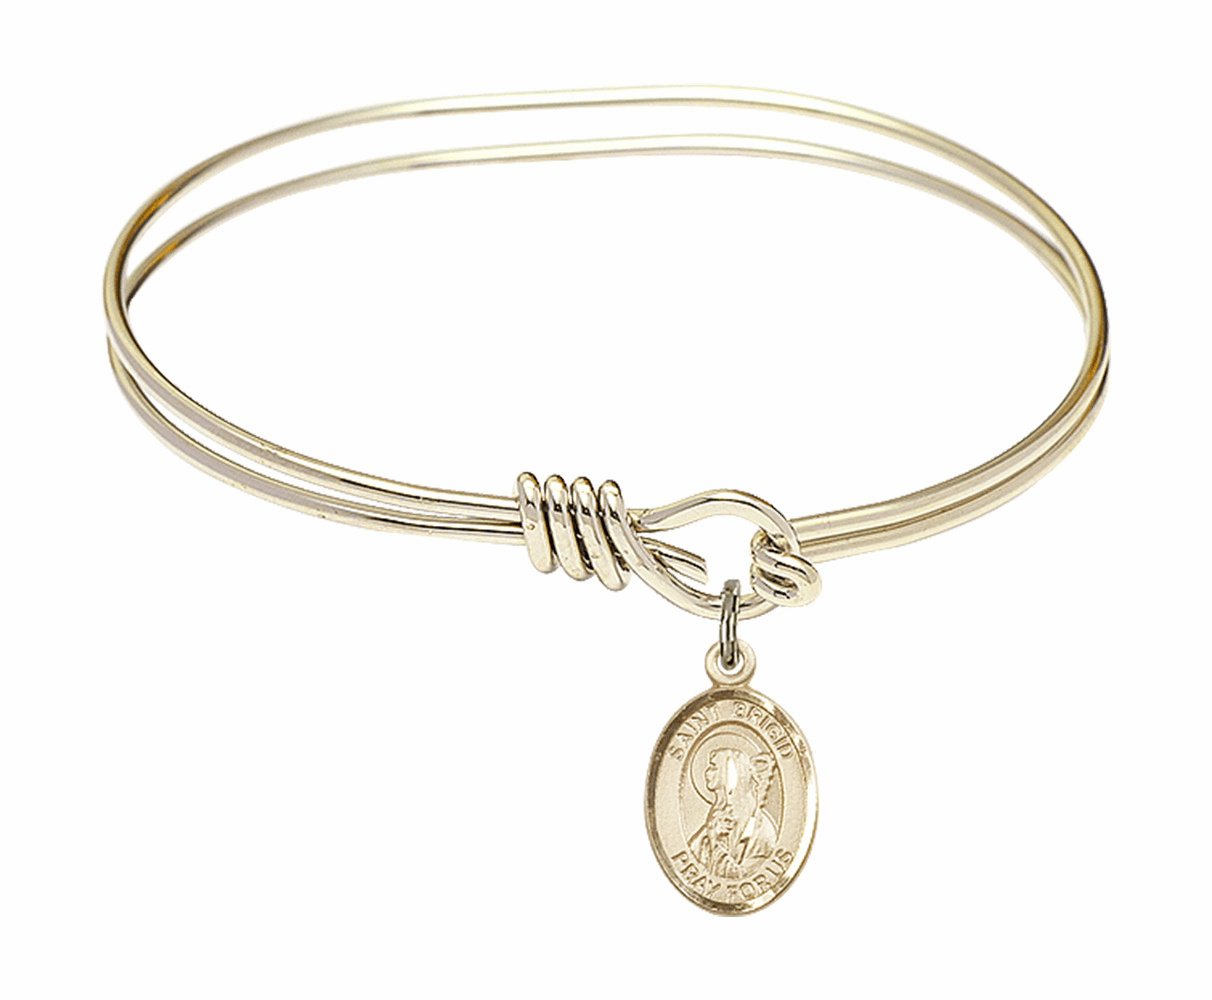 Round Loop St Brigid of Ireland Bangle 14kt Gold-filled Charm Bracelet by Bliss